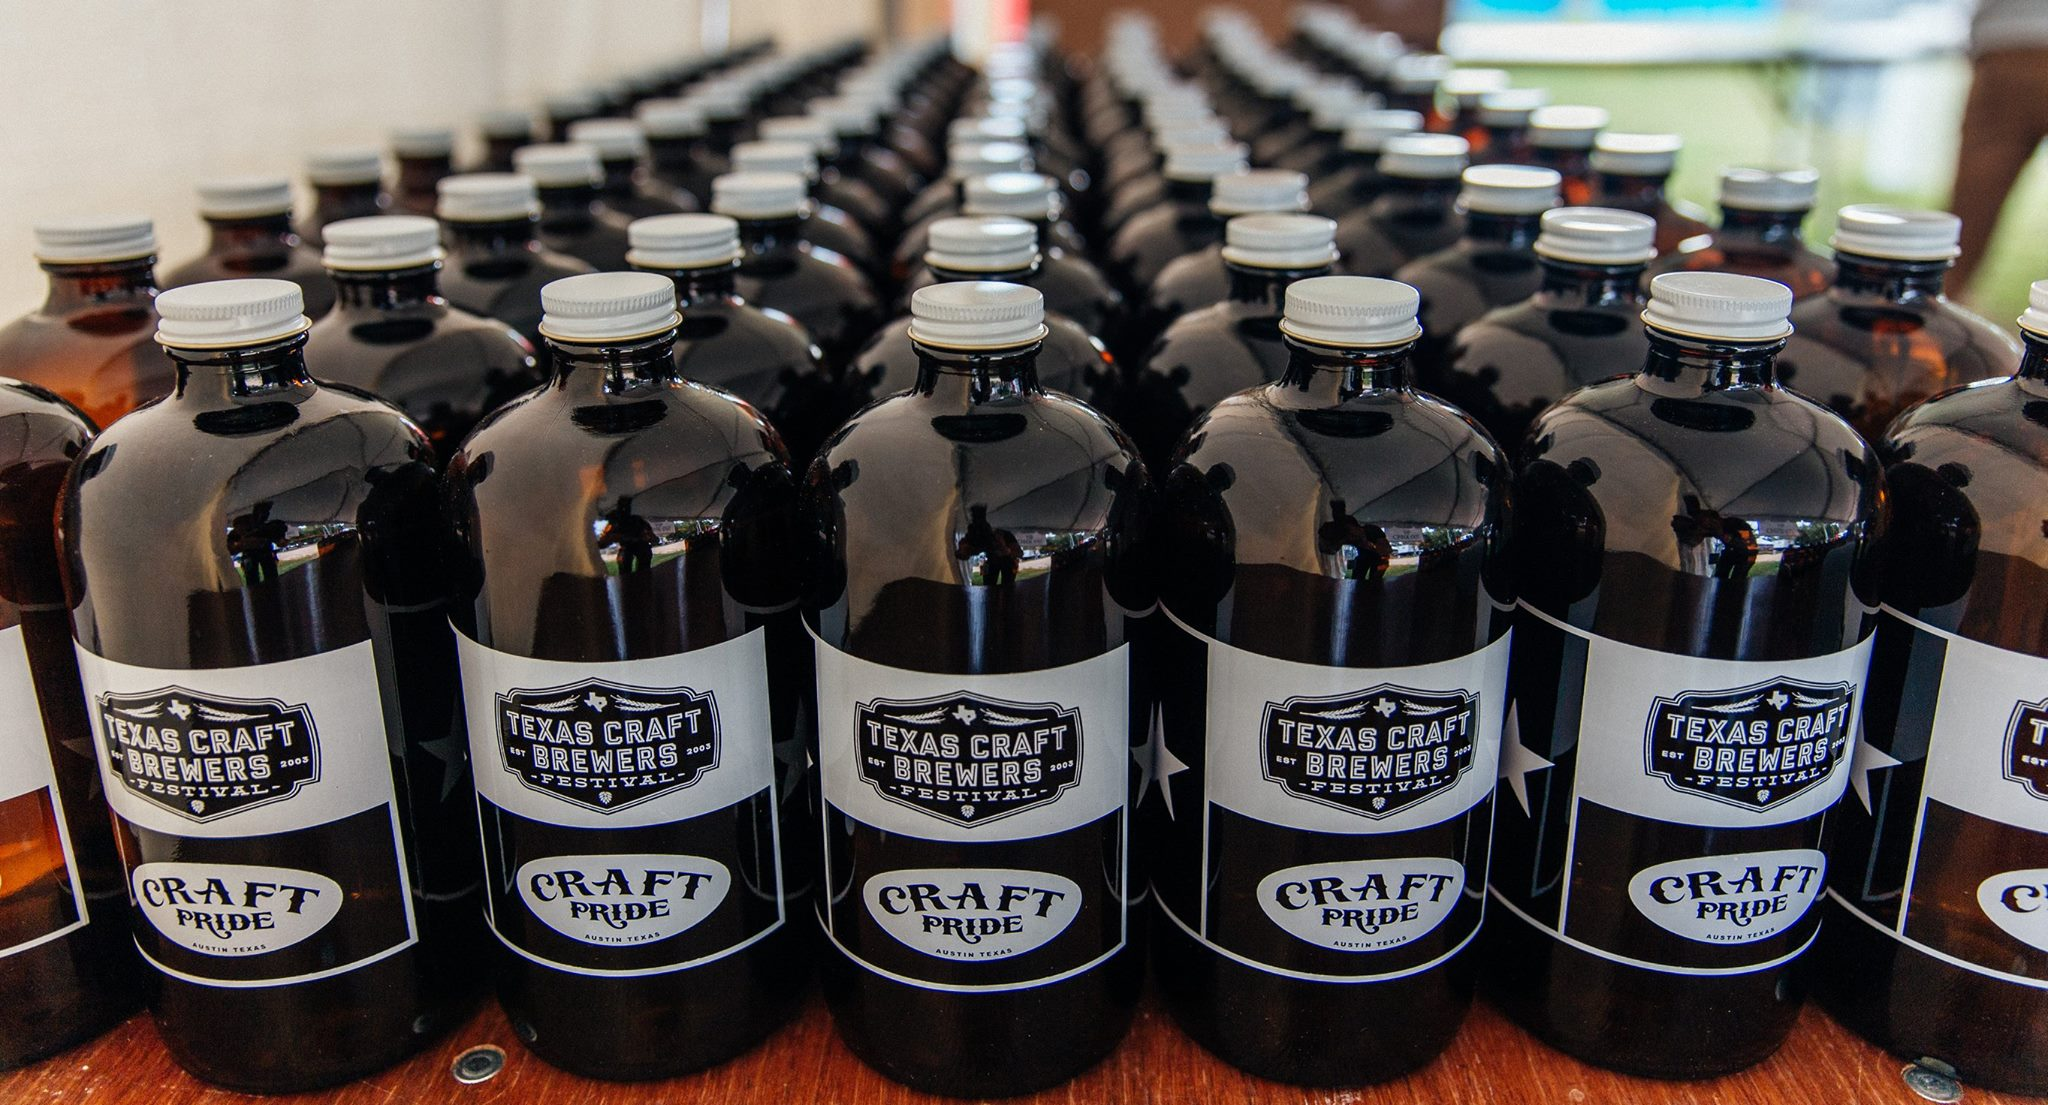 texas-craft-brewers-festival-and-craft-pride